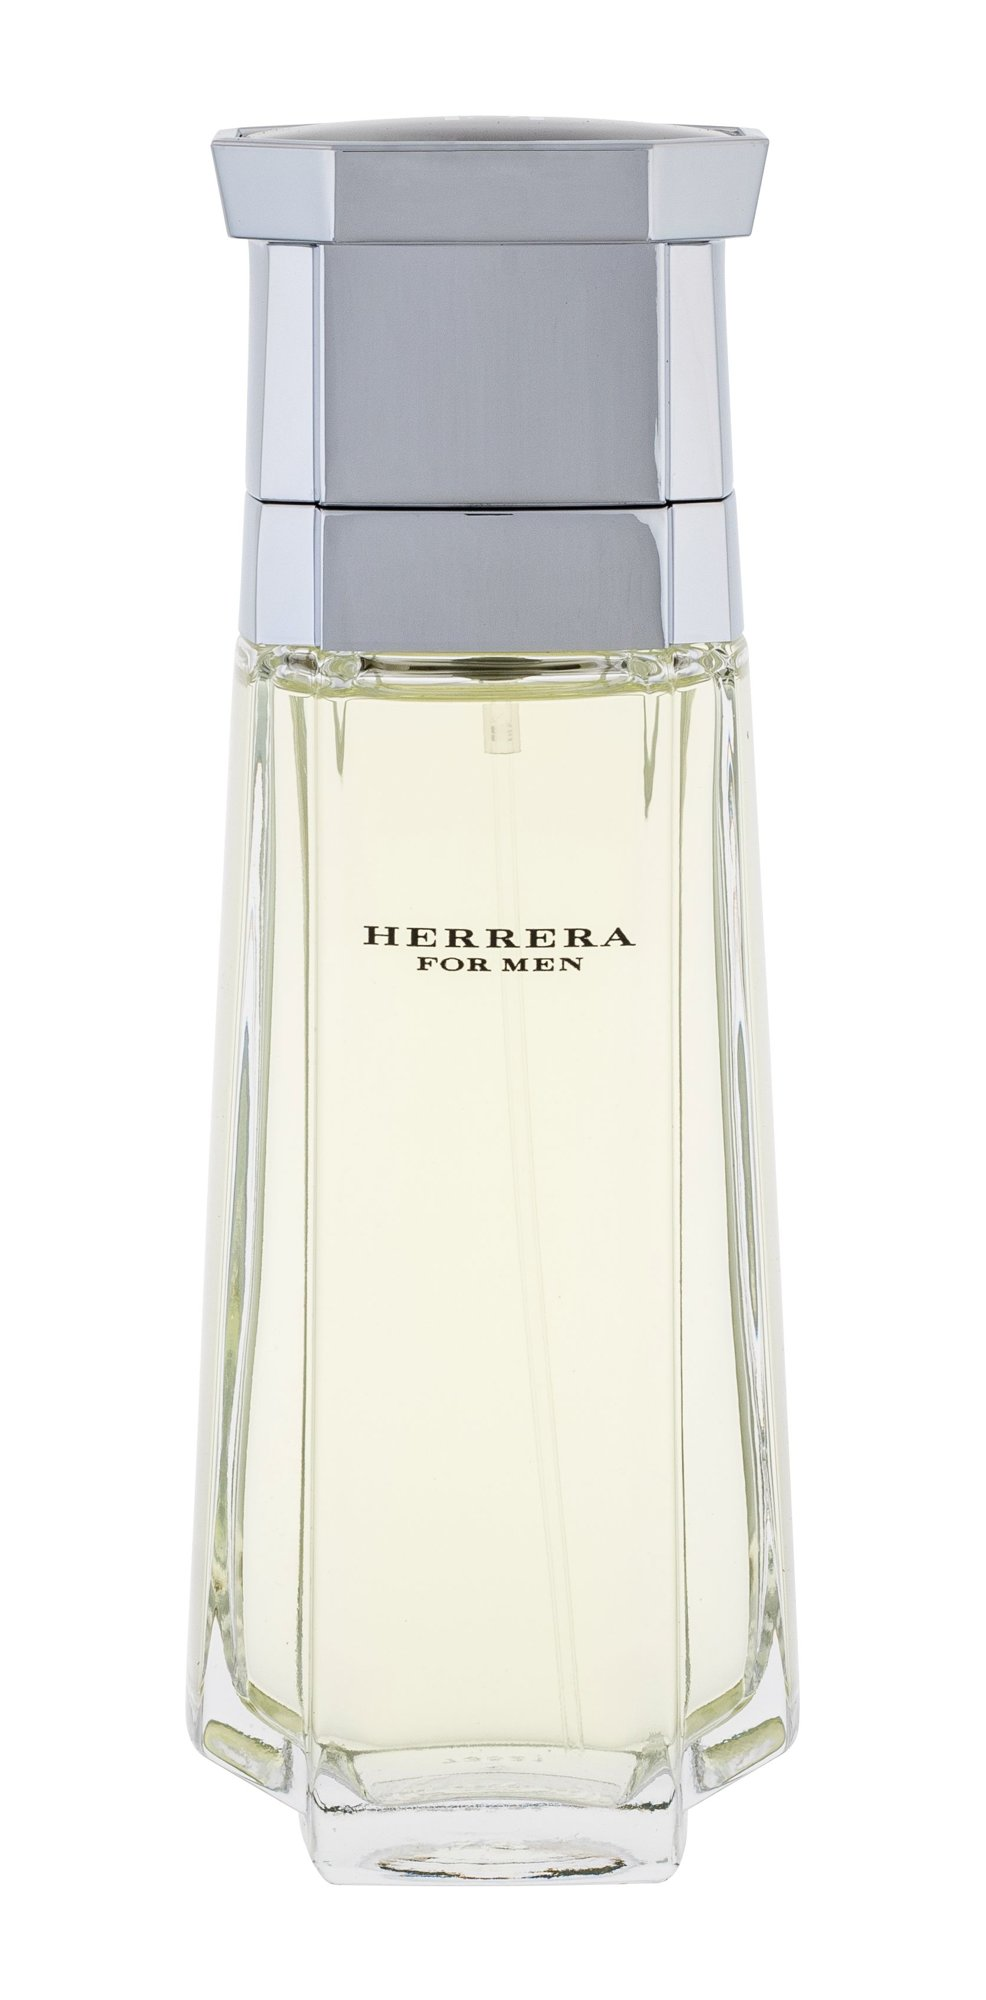 Carolina Herrera Herrera For Men EDT 100ml